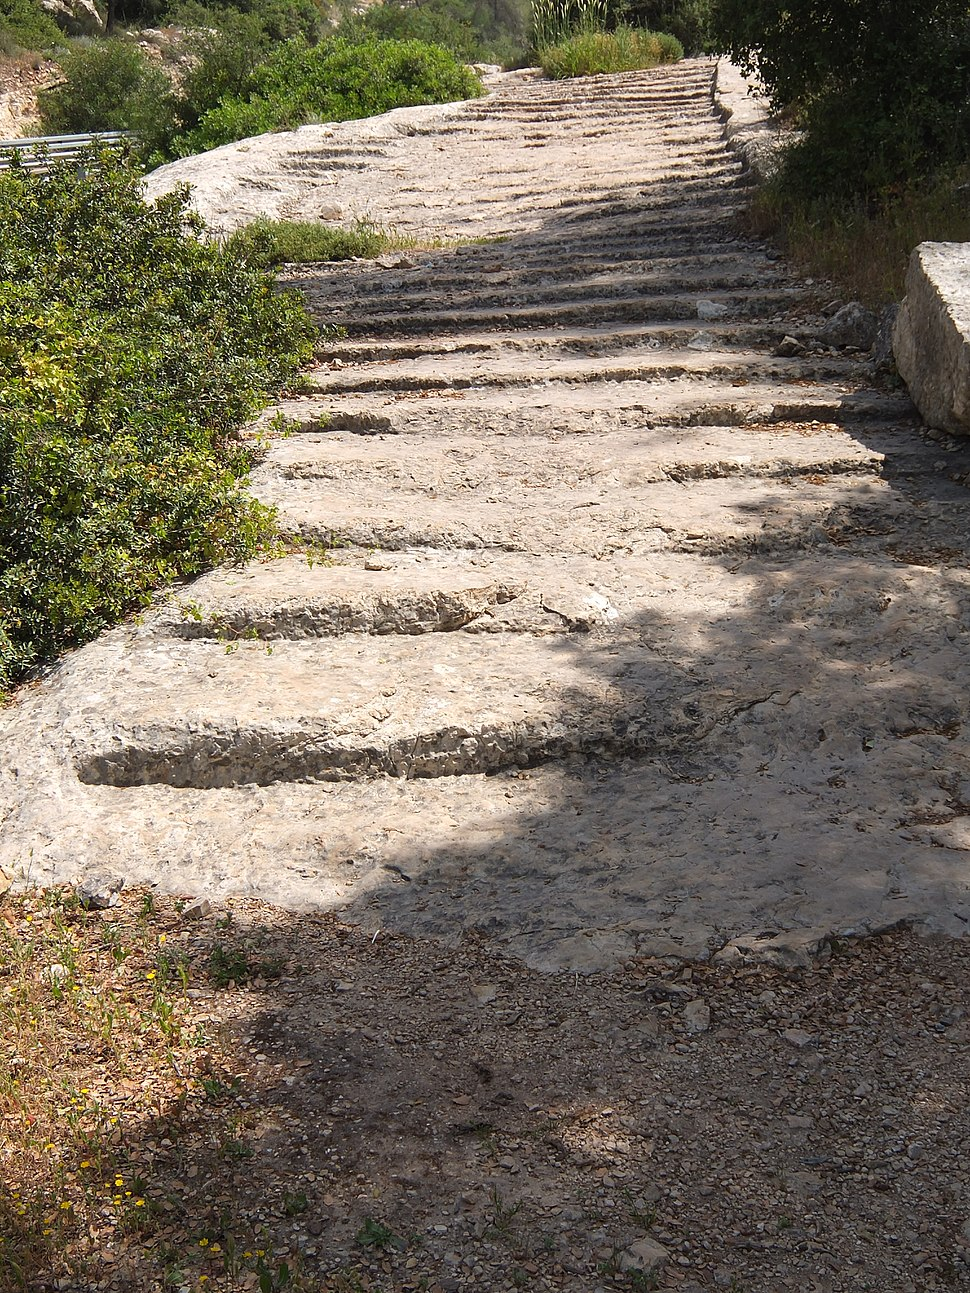 Roman Road with carved steps